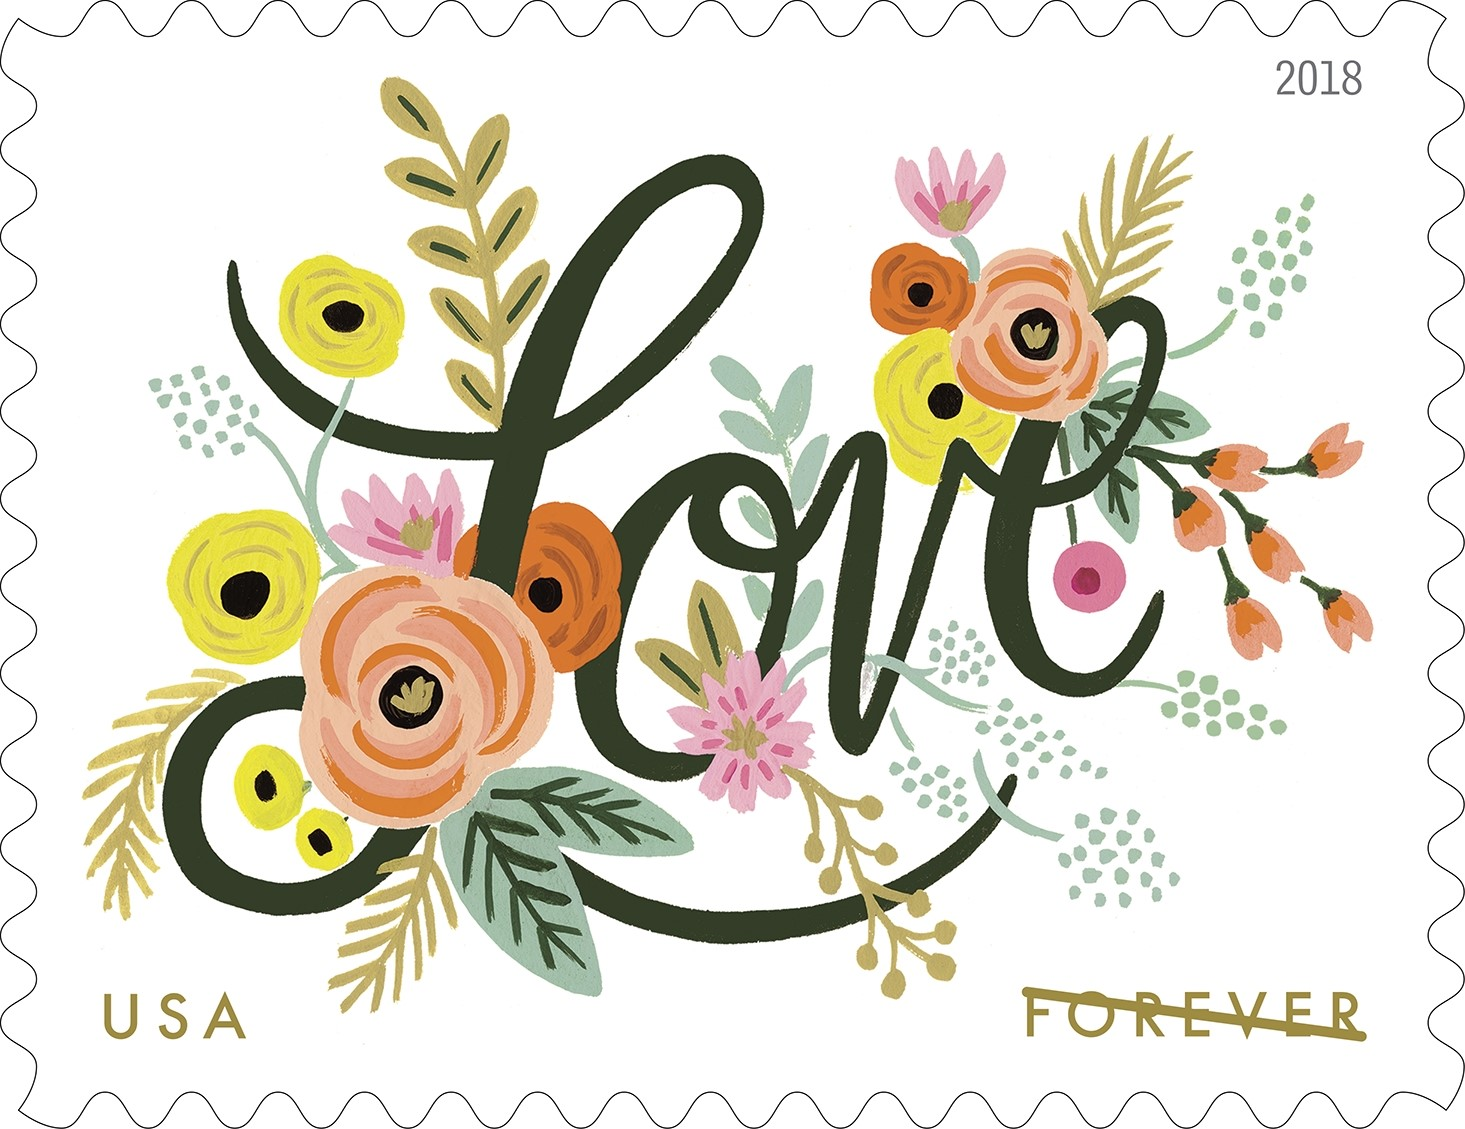 United States - 2018-01-18: Love Flourishes - (49 cent) Forever special stamp